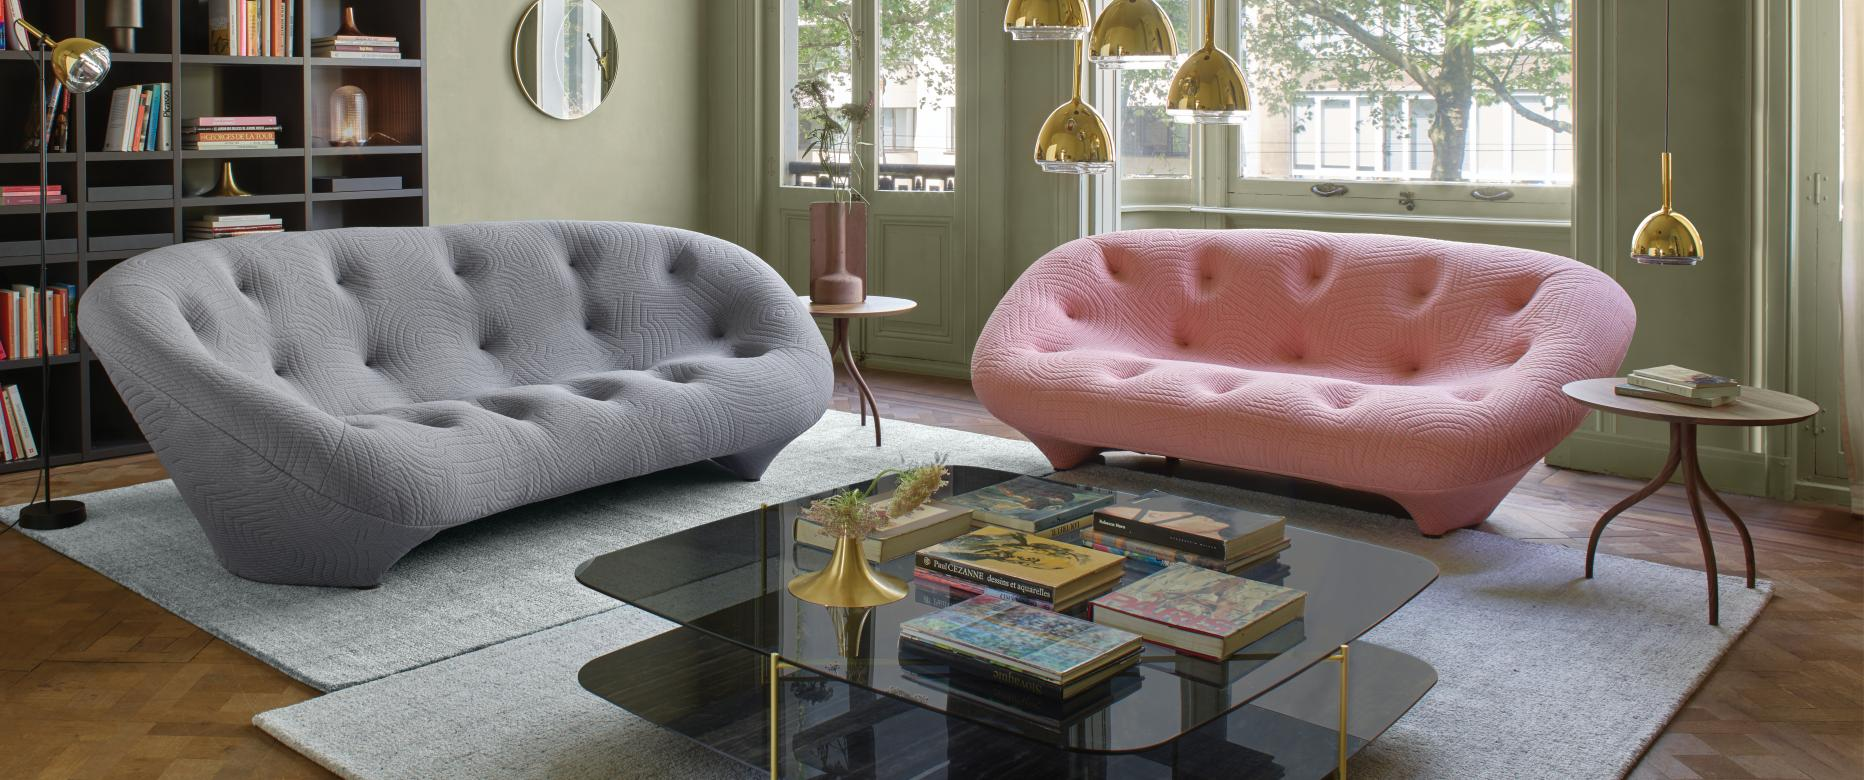 Sofa Berlin Design Ligne Roset Official Site Contemporary High End Furniture